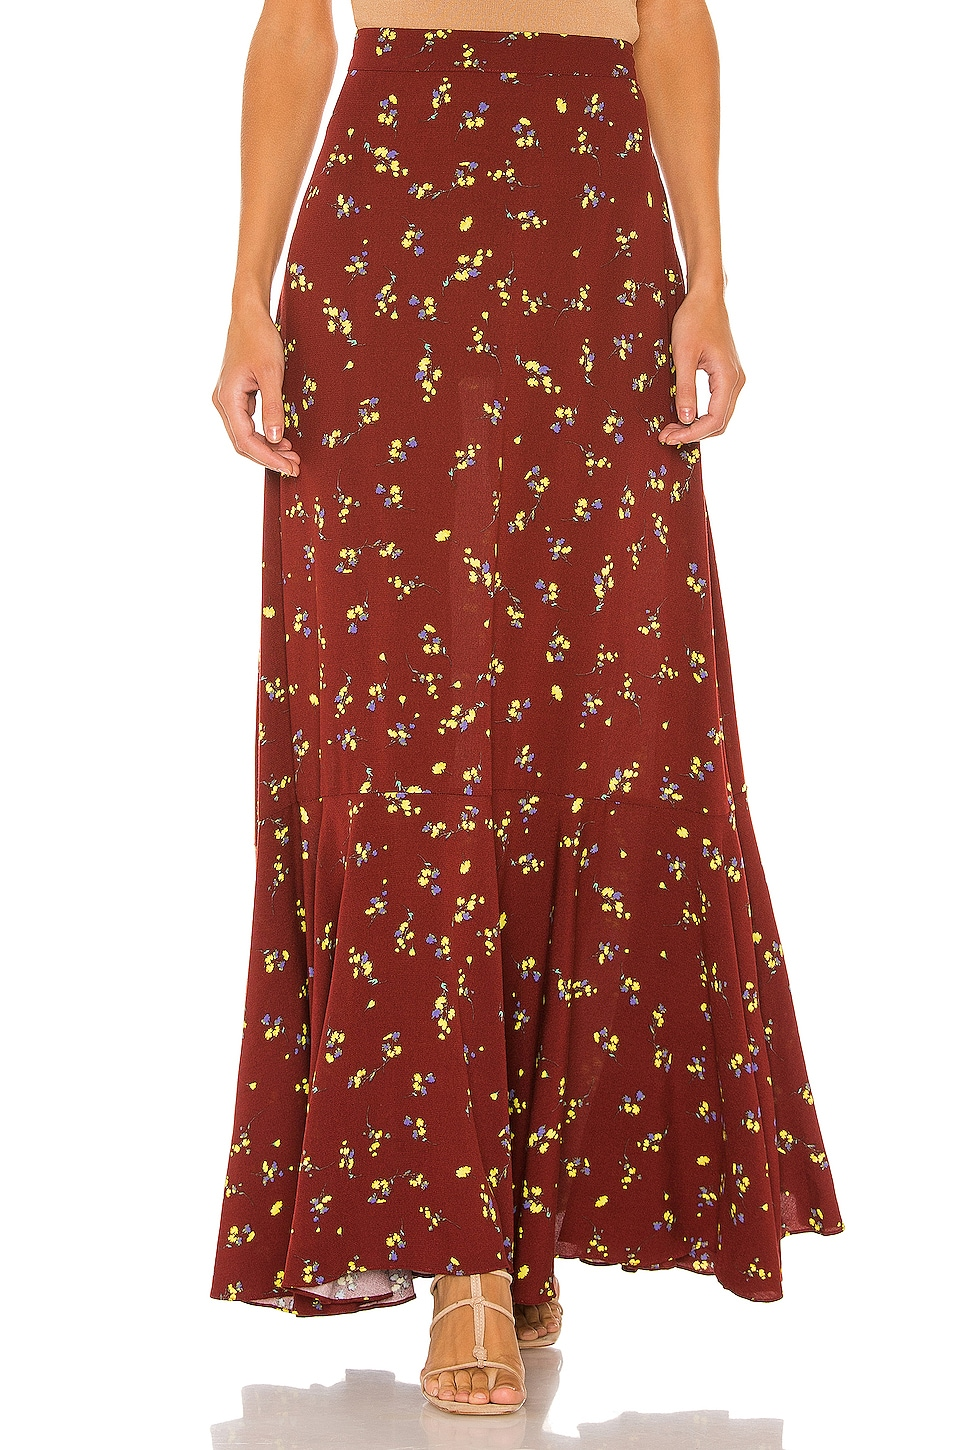 Free People Ruby's Forever Maxi Skirt in Brown